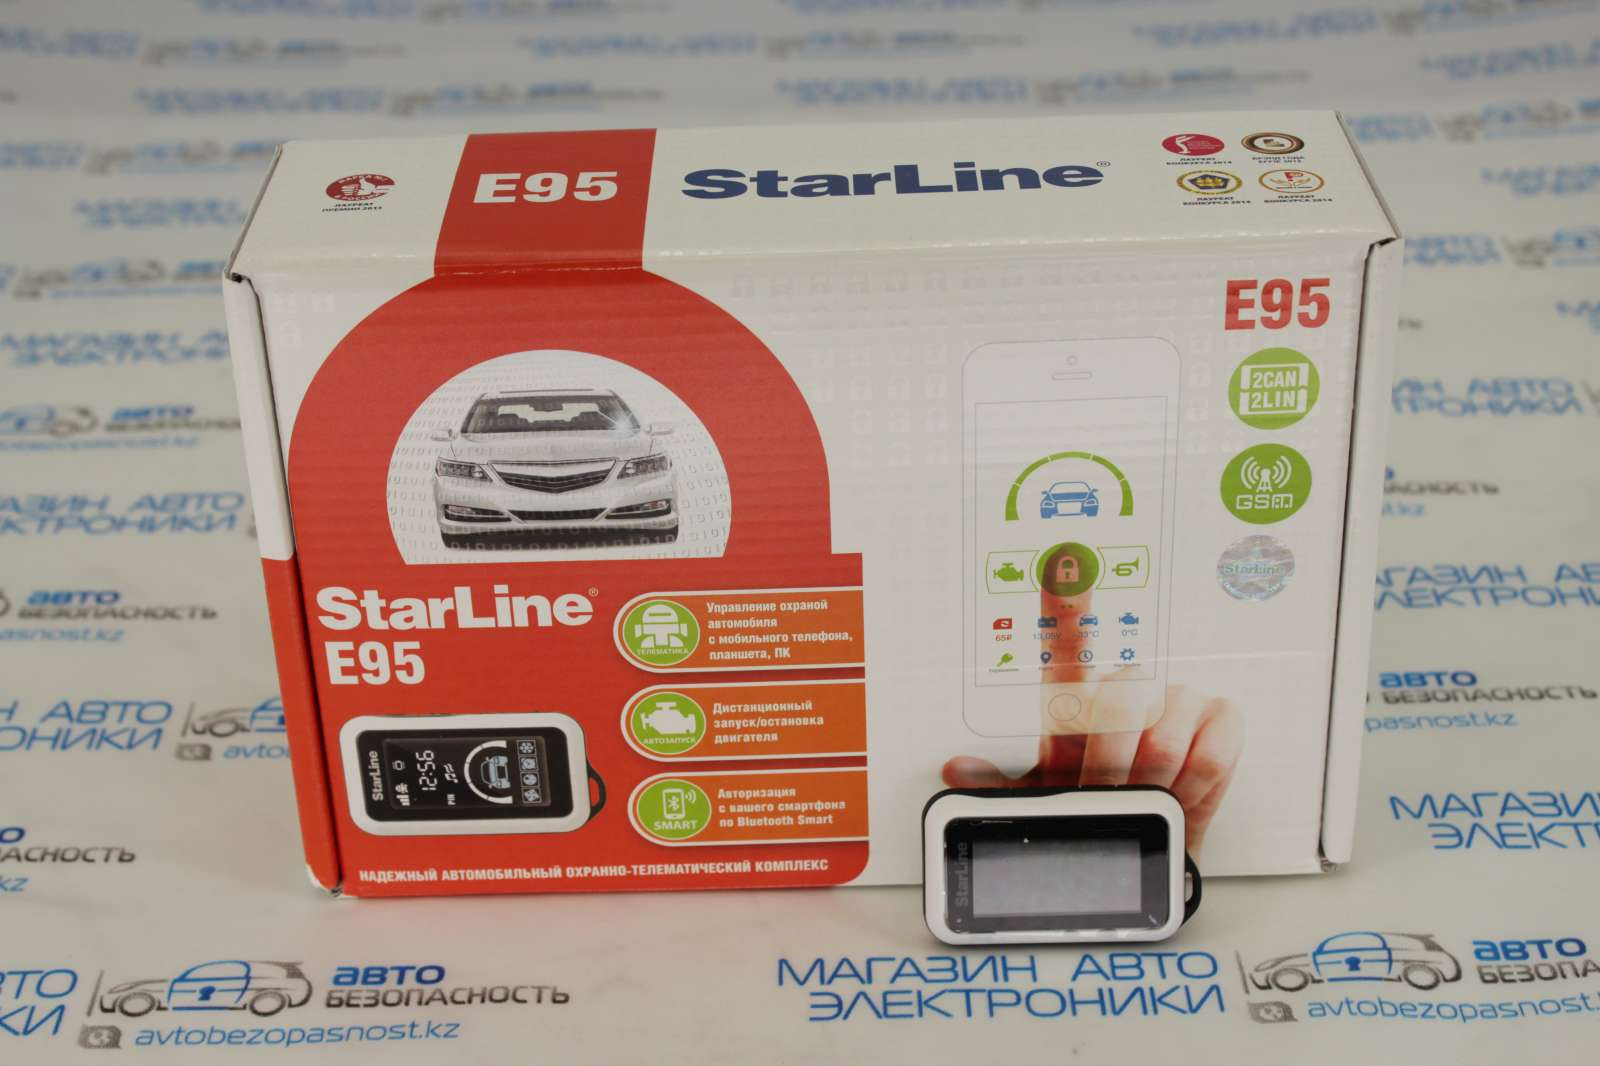 StarLine E95 BT 2CAN-LIN GSM